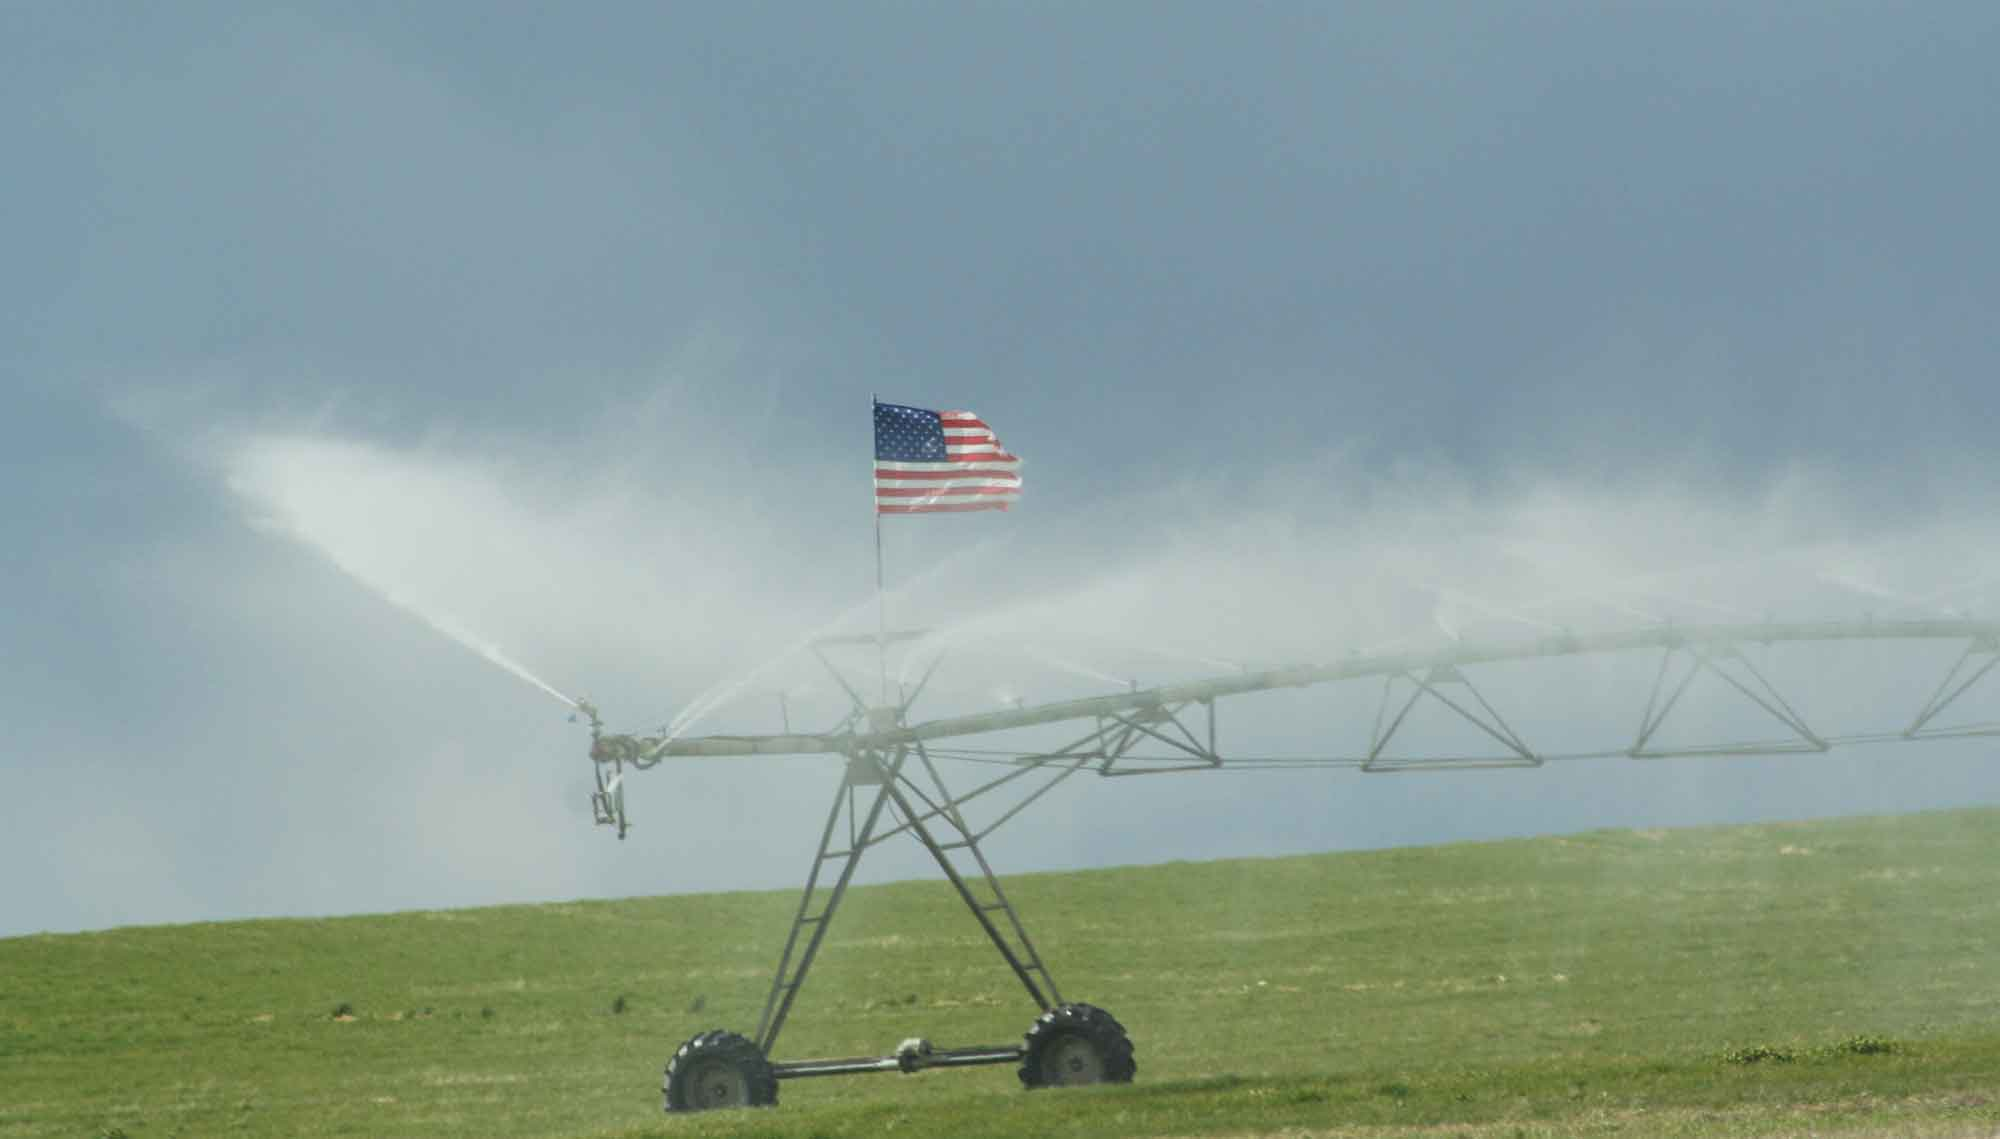 Wheel line with flag in field